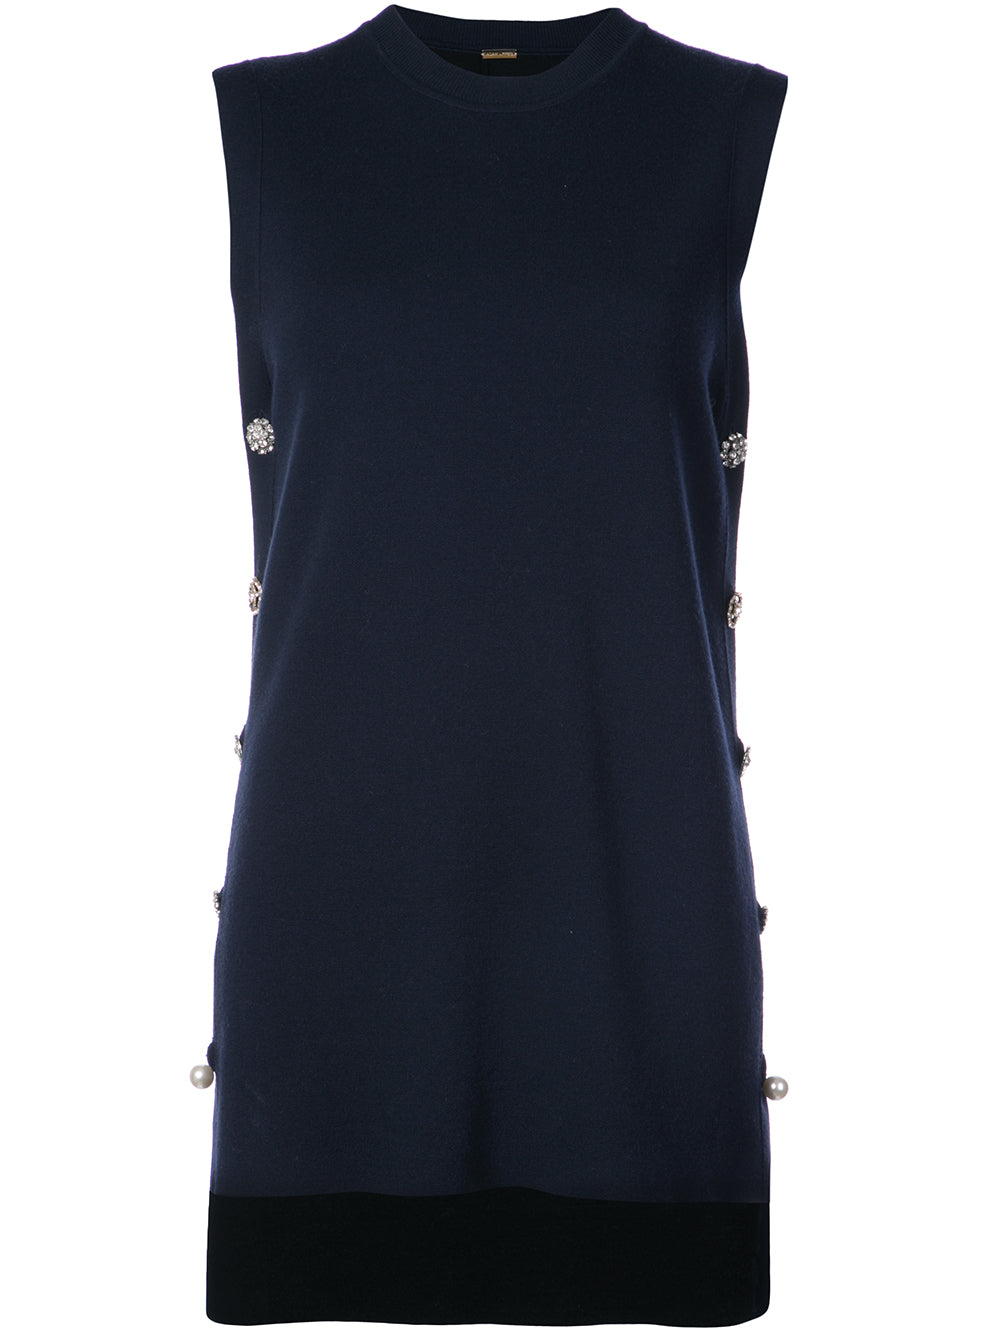 MERINO WOOL SLEEVELESS TUNIC WITH JEWEL BUTTONS